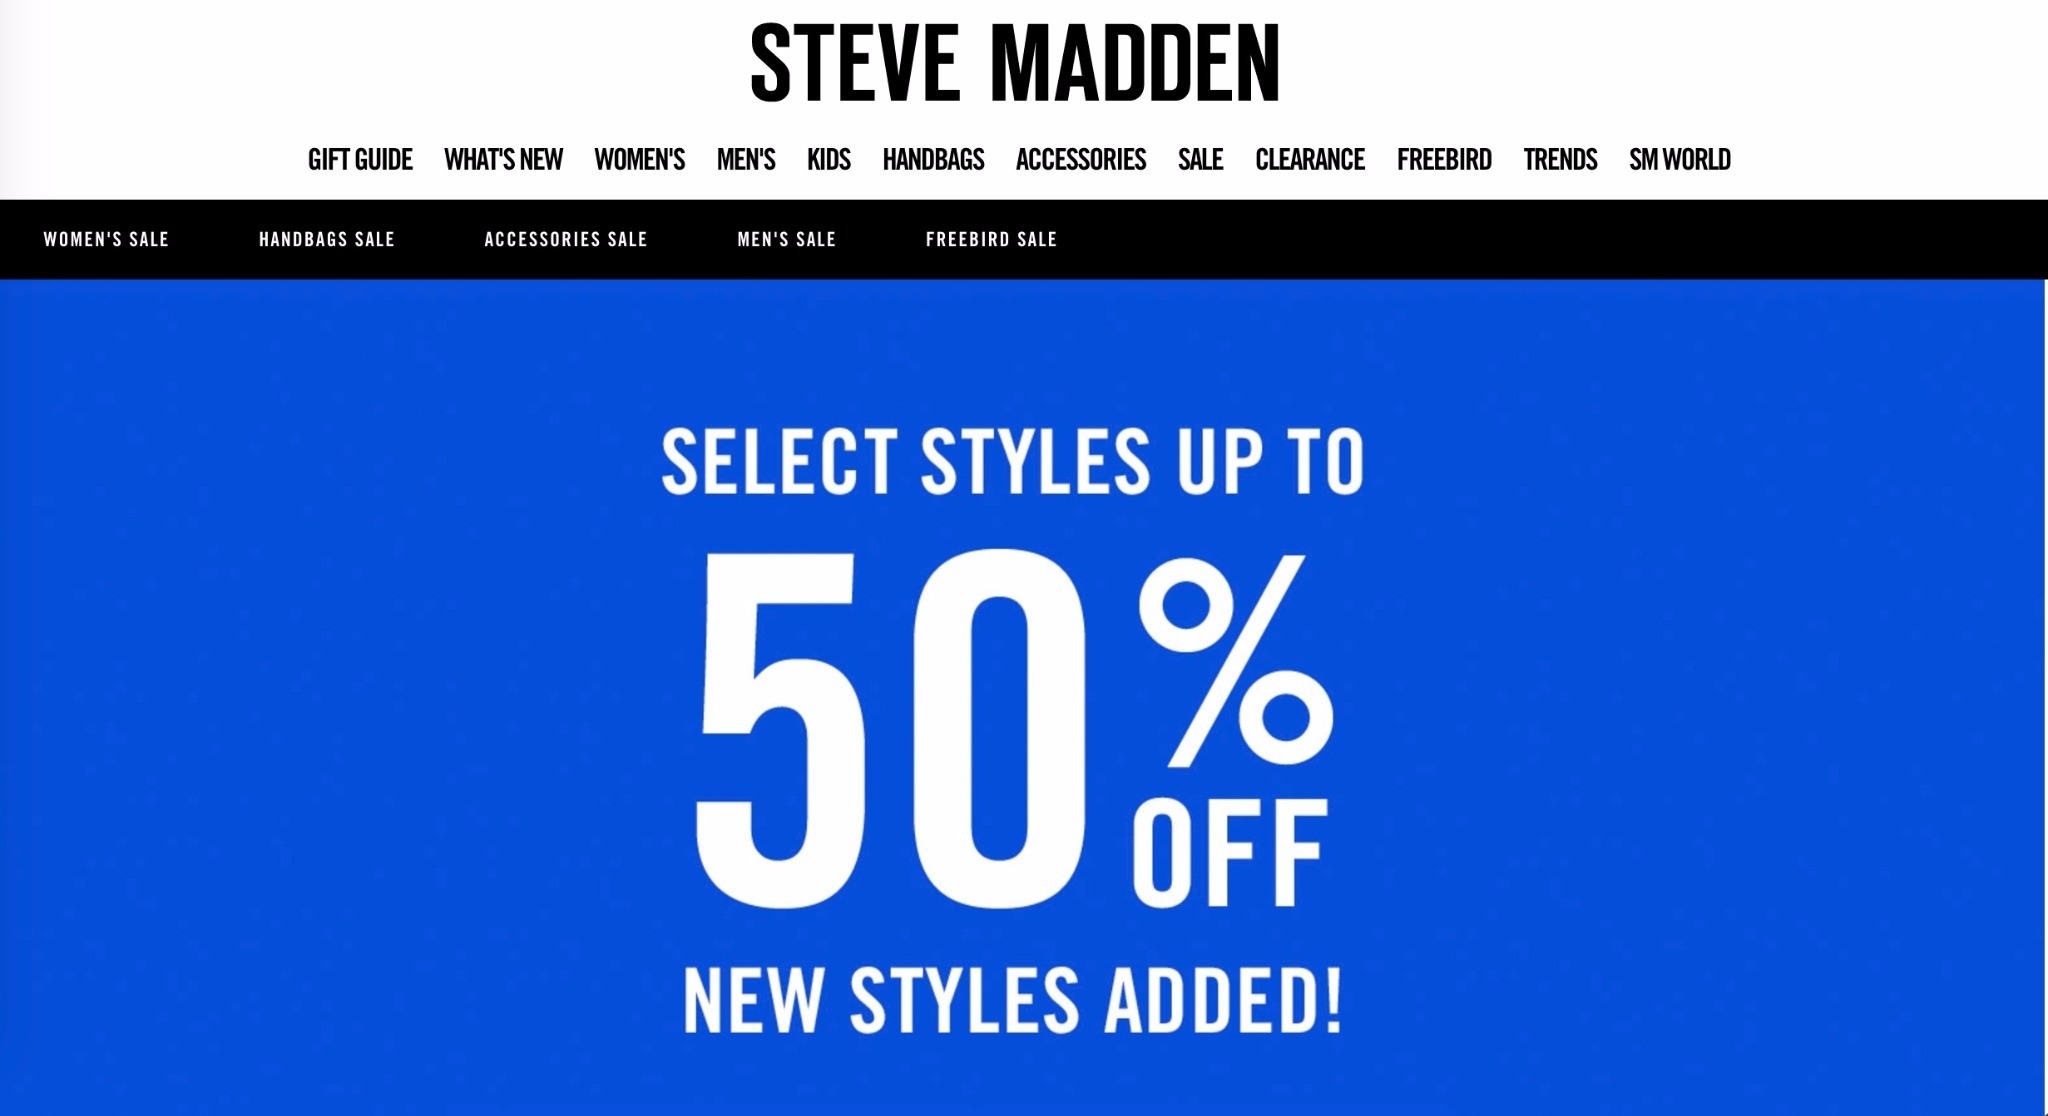 bbf76fad0bf Coupons for steve madden 50 off - Fujitsu scansnap coupon code